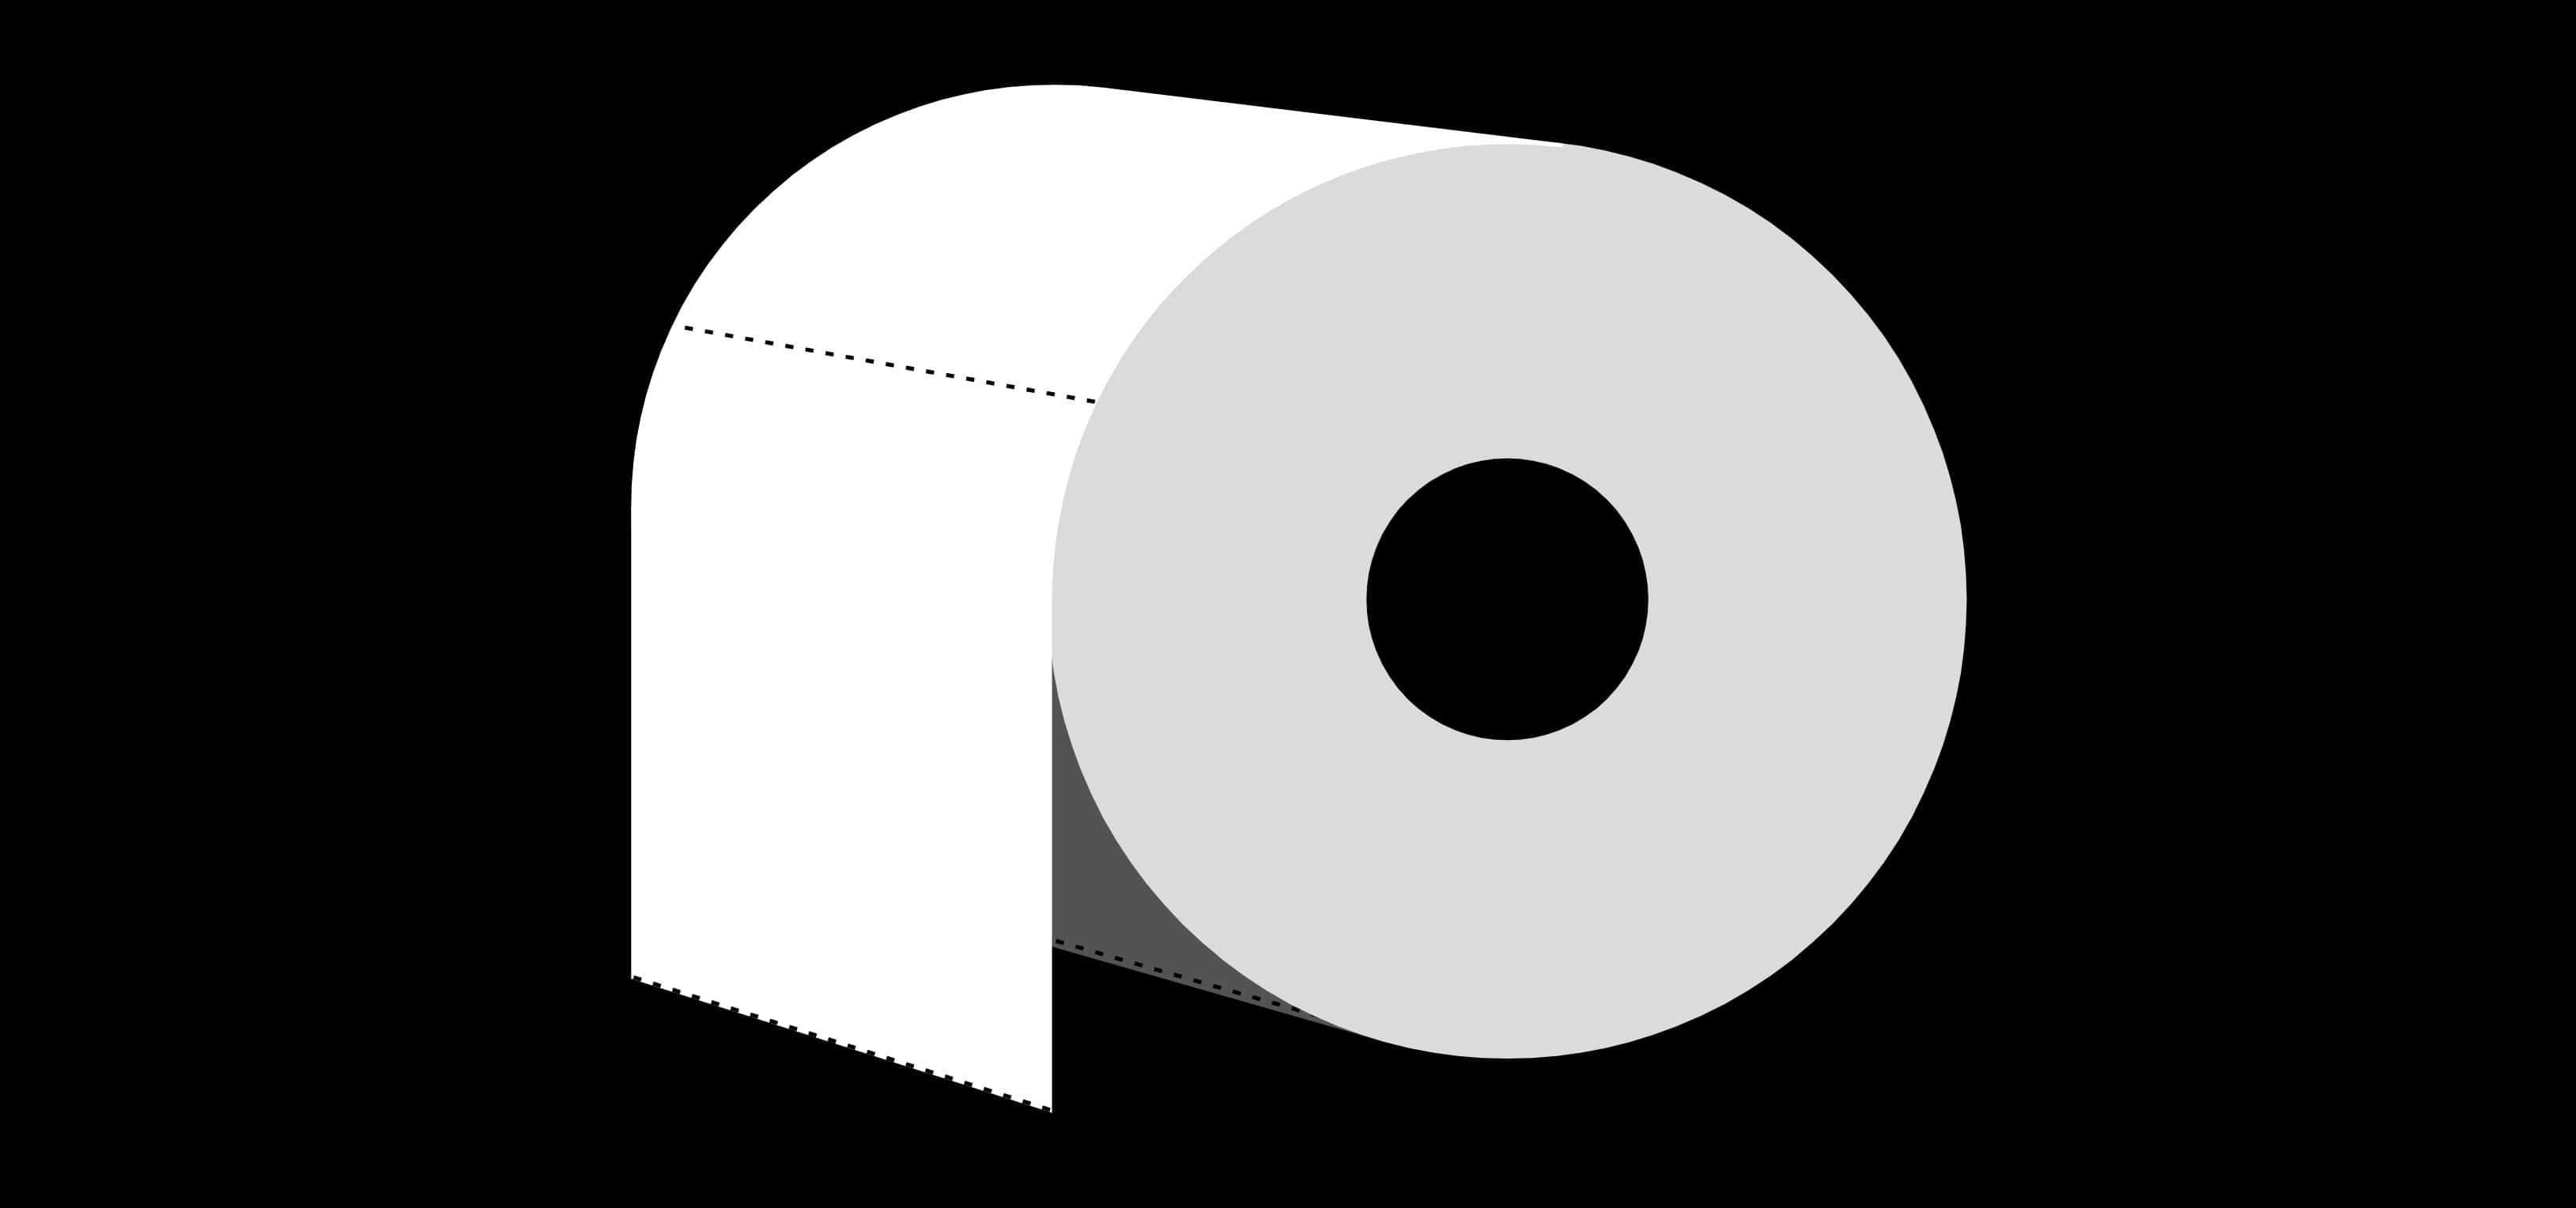 An image of a toilet paper roll on the Paper Toiler website.